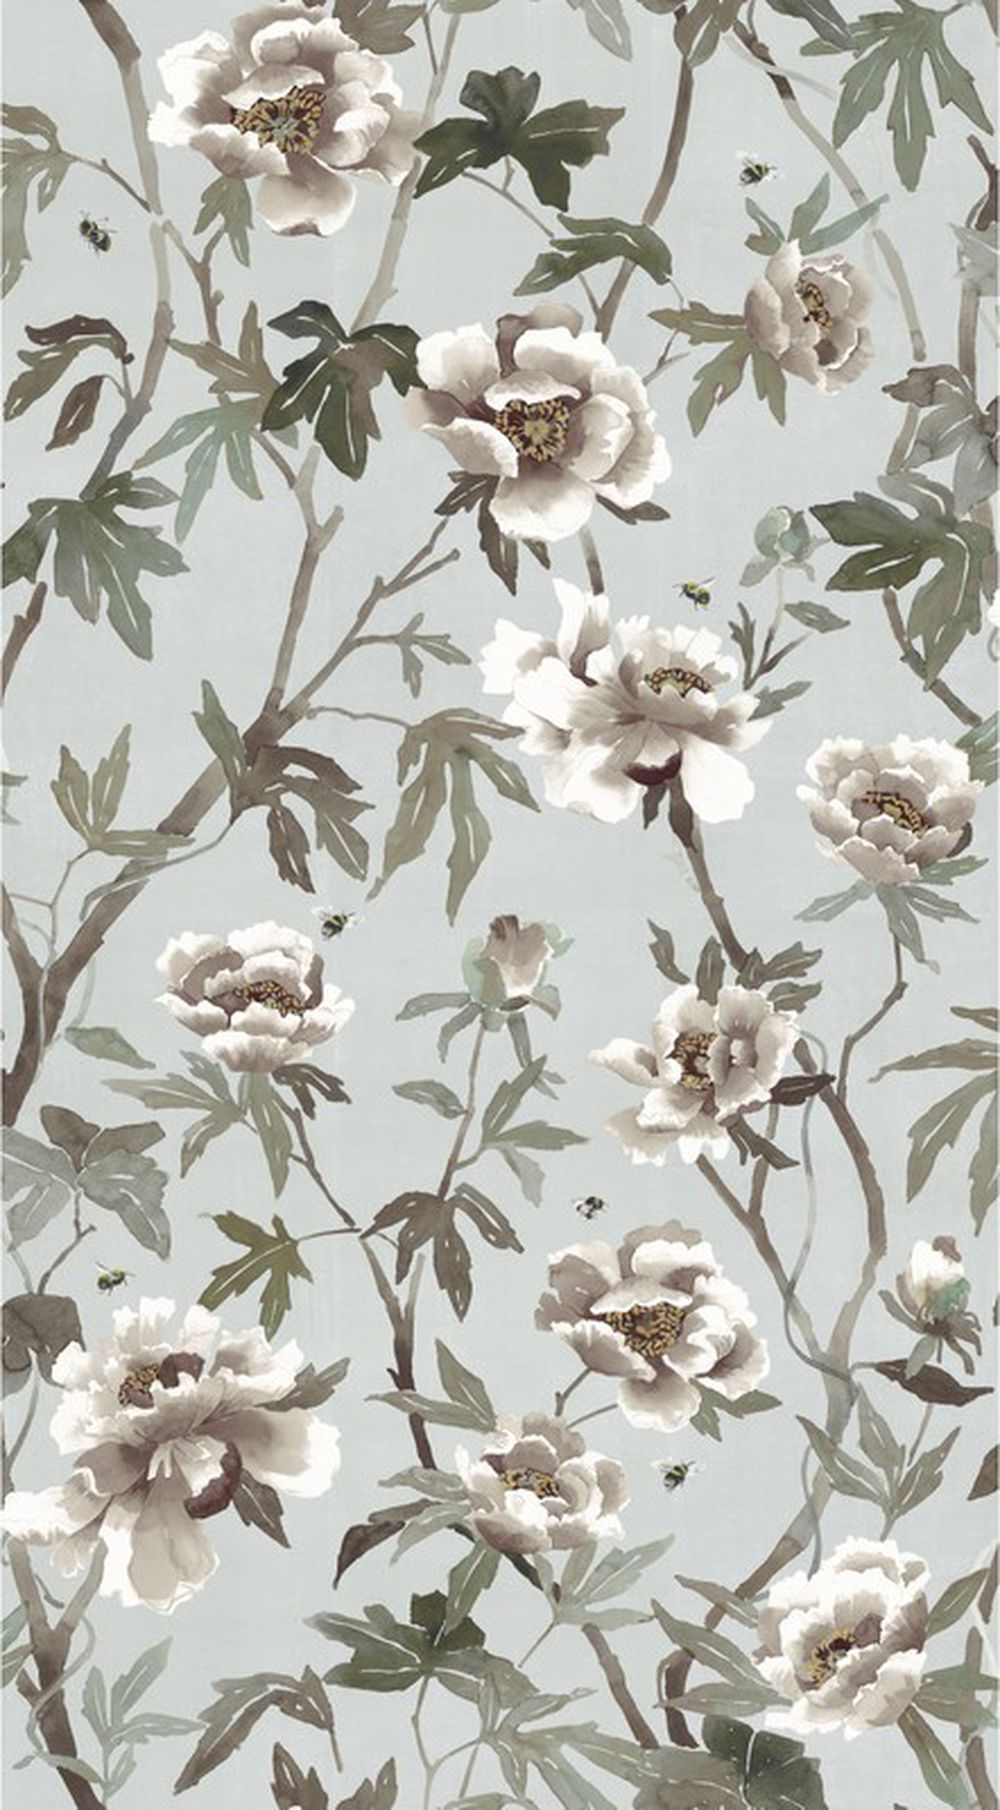 Photo of the fabric Peonia A Wallpaper Duckegg swatch by Mokum. Use for Wall Covering. Style of Animals And Birds, Decorative, Floral And Botannical, Pattern